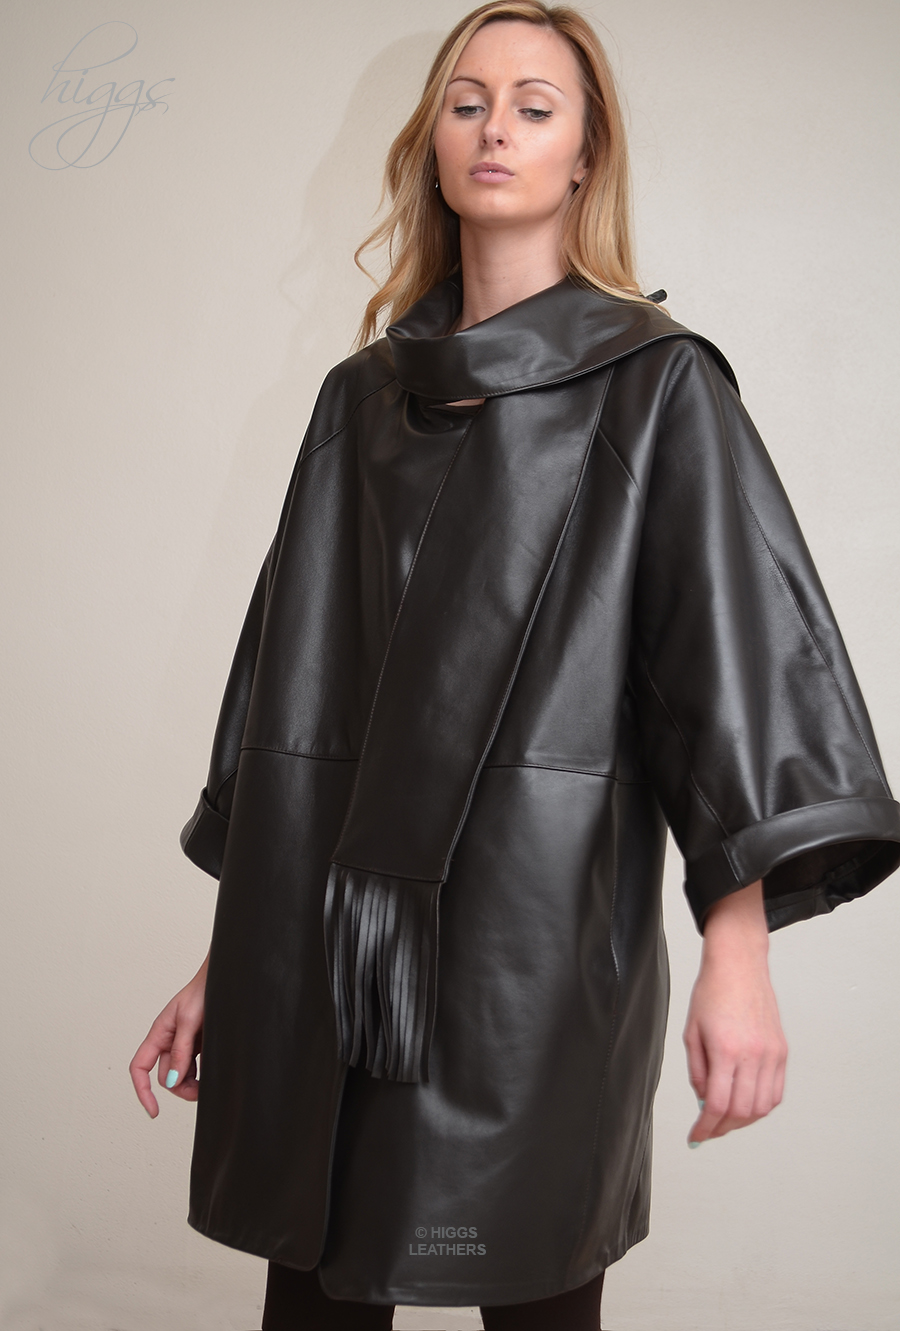 Higgs Leathers ALL SOLD!  Roma (ladies Designer Black Leather scarf coats) Superb Designer Leather coats!